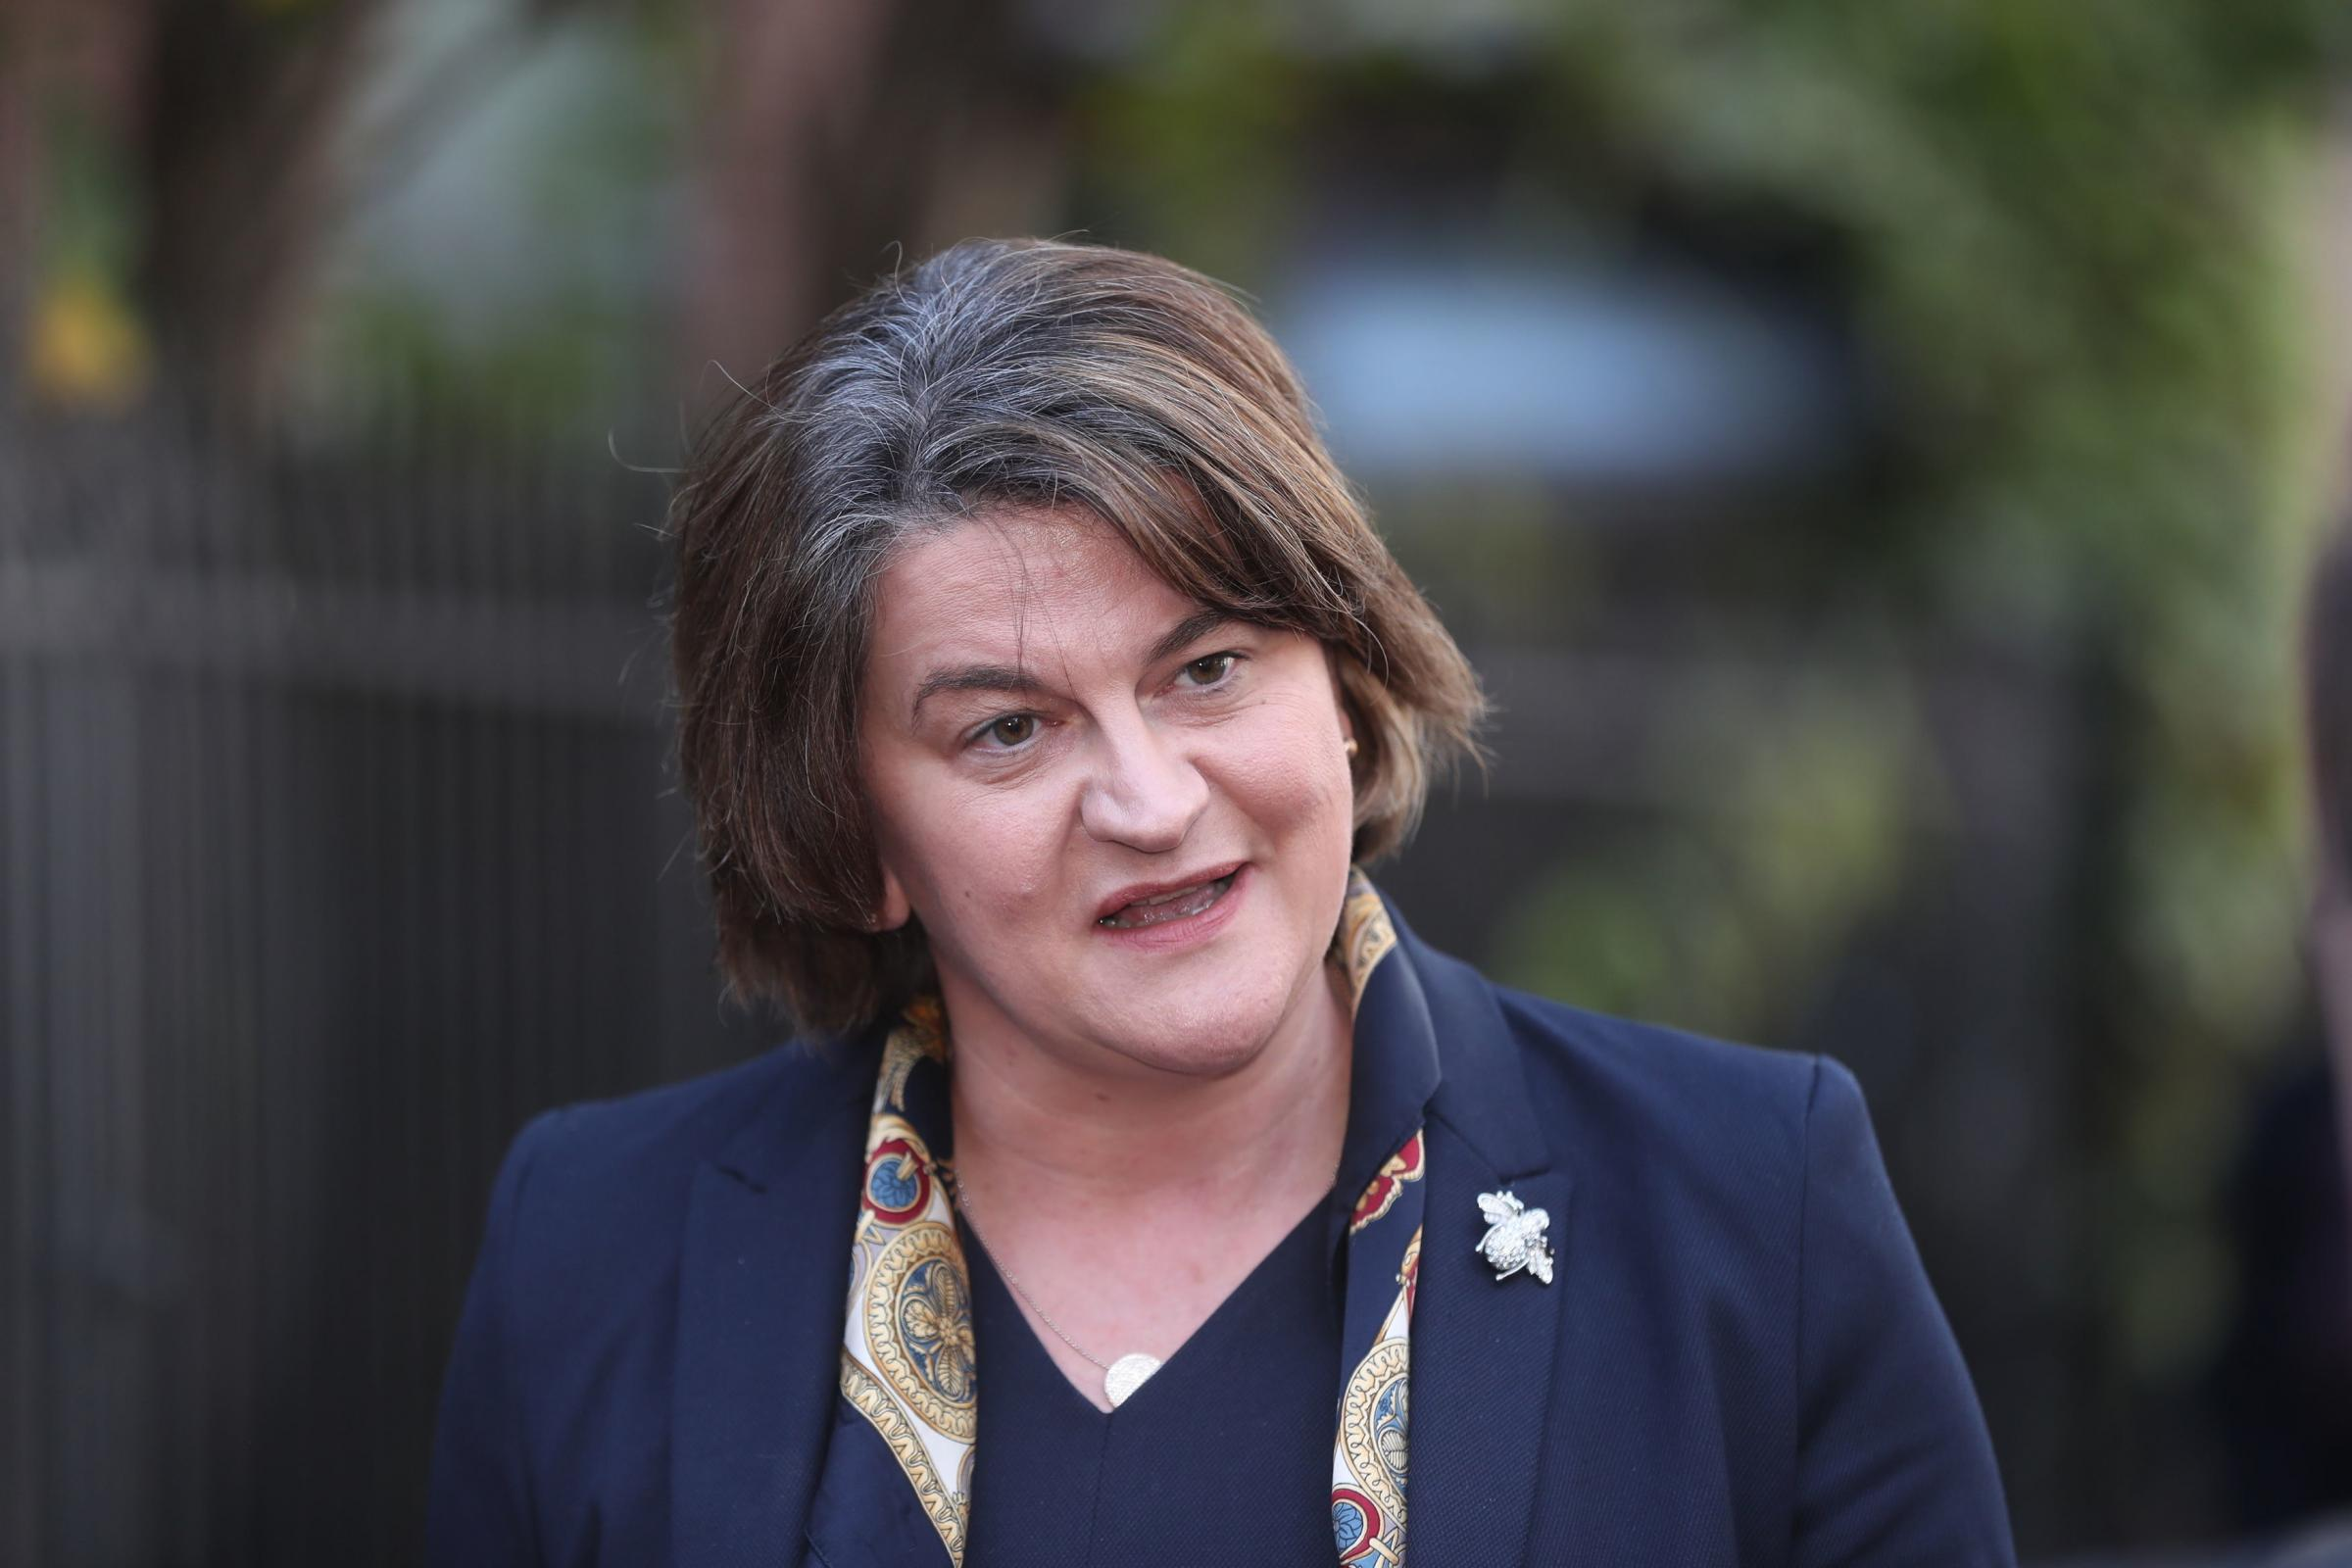 DUP warns it will oppose any Brexit deal 'which weakens Union'